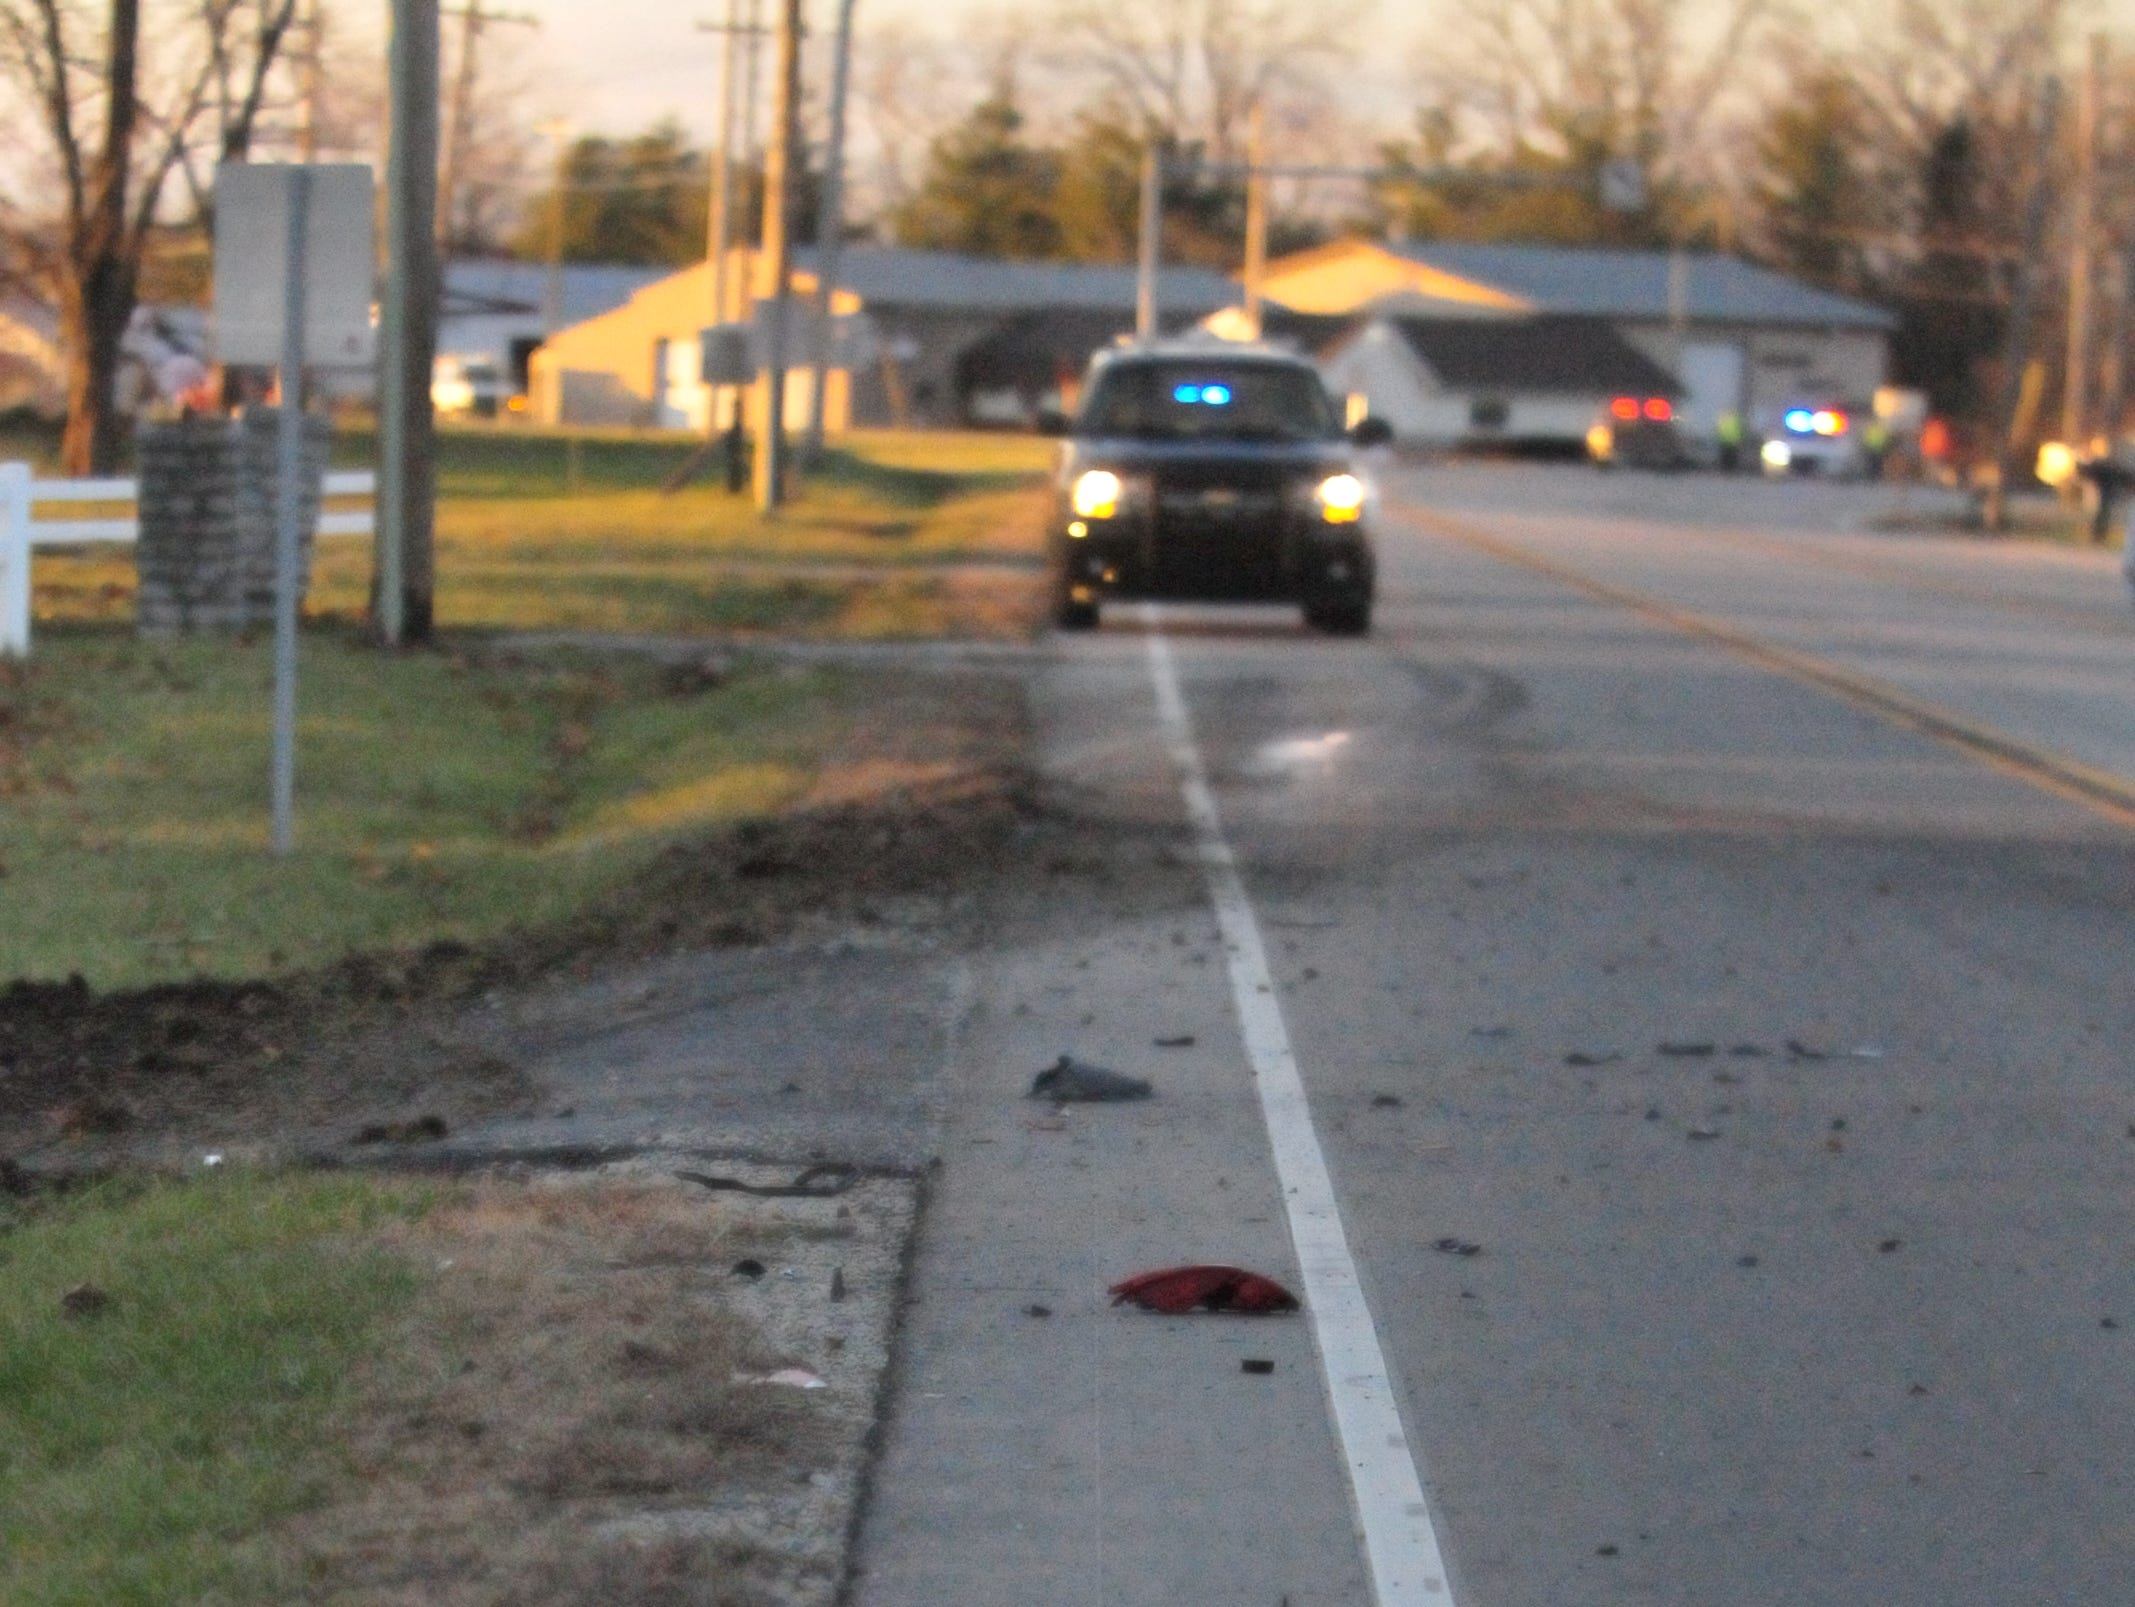 Debris was scattered on the marked U.S. 35 pavement Monday afternoon following a three-vehicle accident.